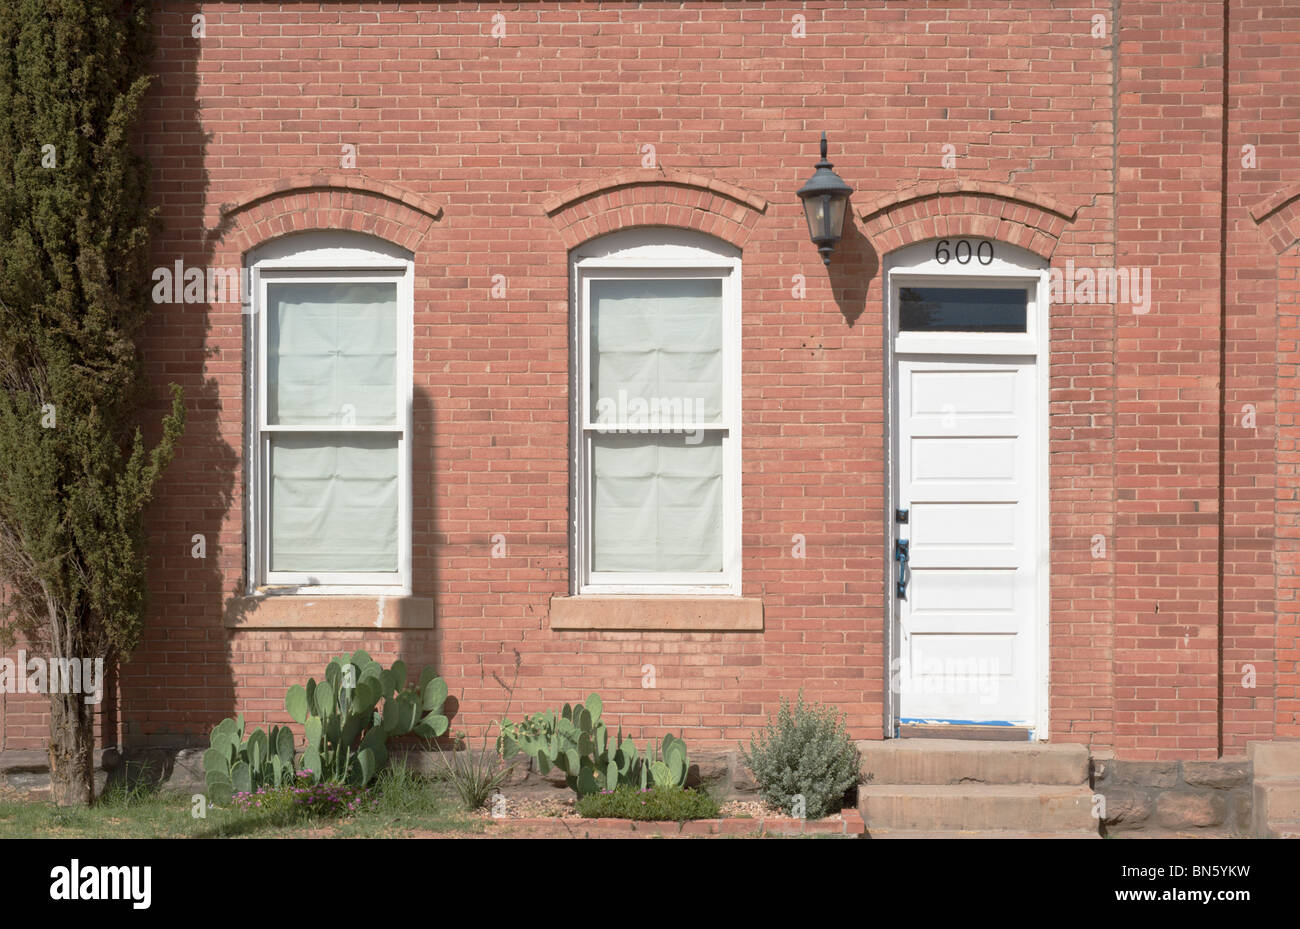 An old brick building with arched windows, and white door, is found in Tularosa, New Mexico. - Stock Image